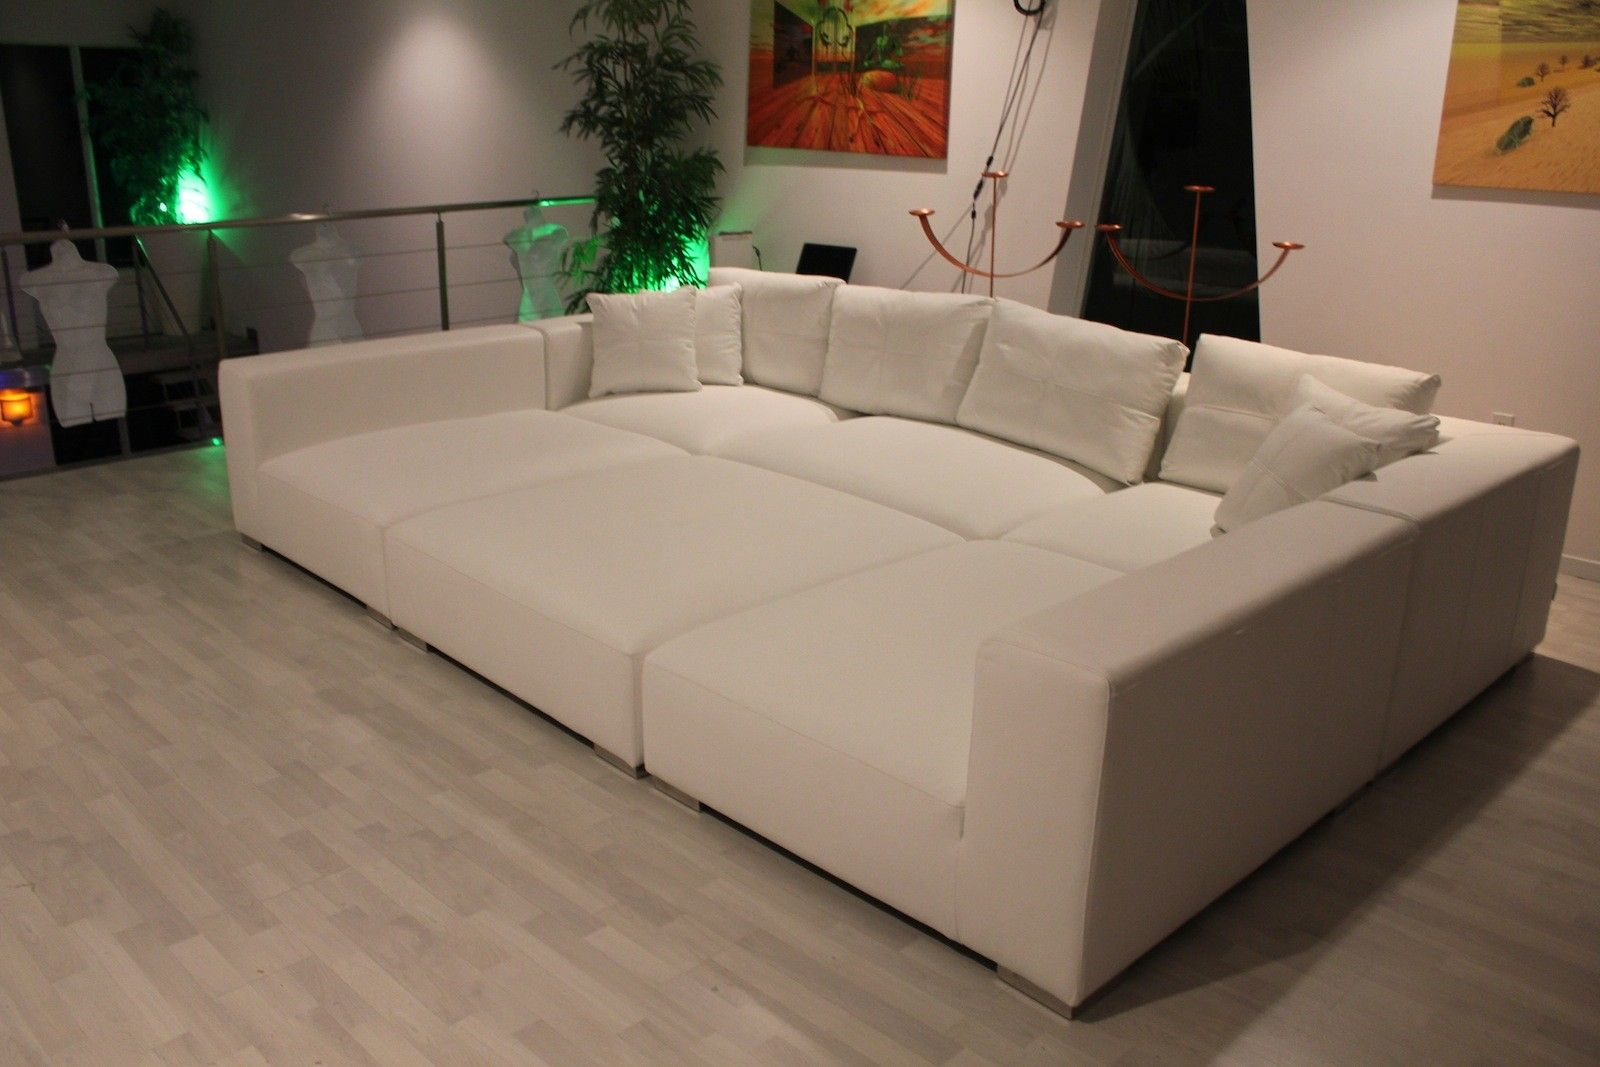 Sofa pit  It looks so comfy  D. Sofa pit  It looks so comfy  D   For the Home   Pinterest